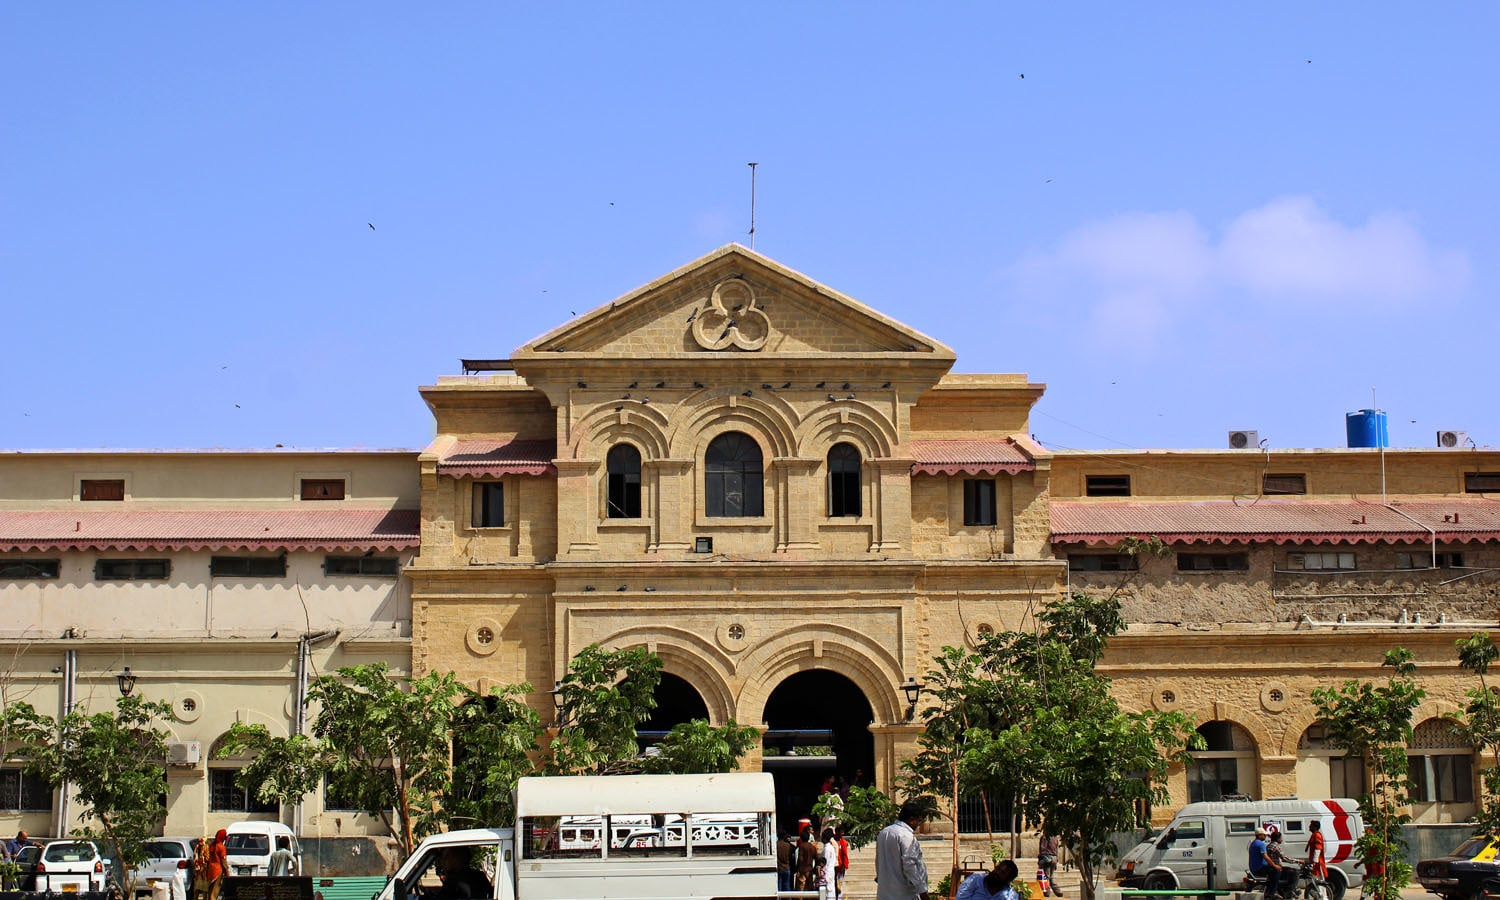 Completed in 1898 at a total cost of Rs. 80,000 the building of Karachi Cantt Station is one of the oldest in country. It was earlier known as Frere Street Station.